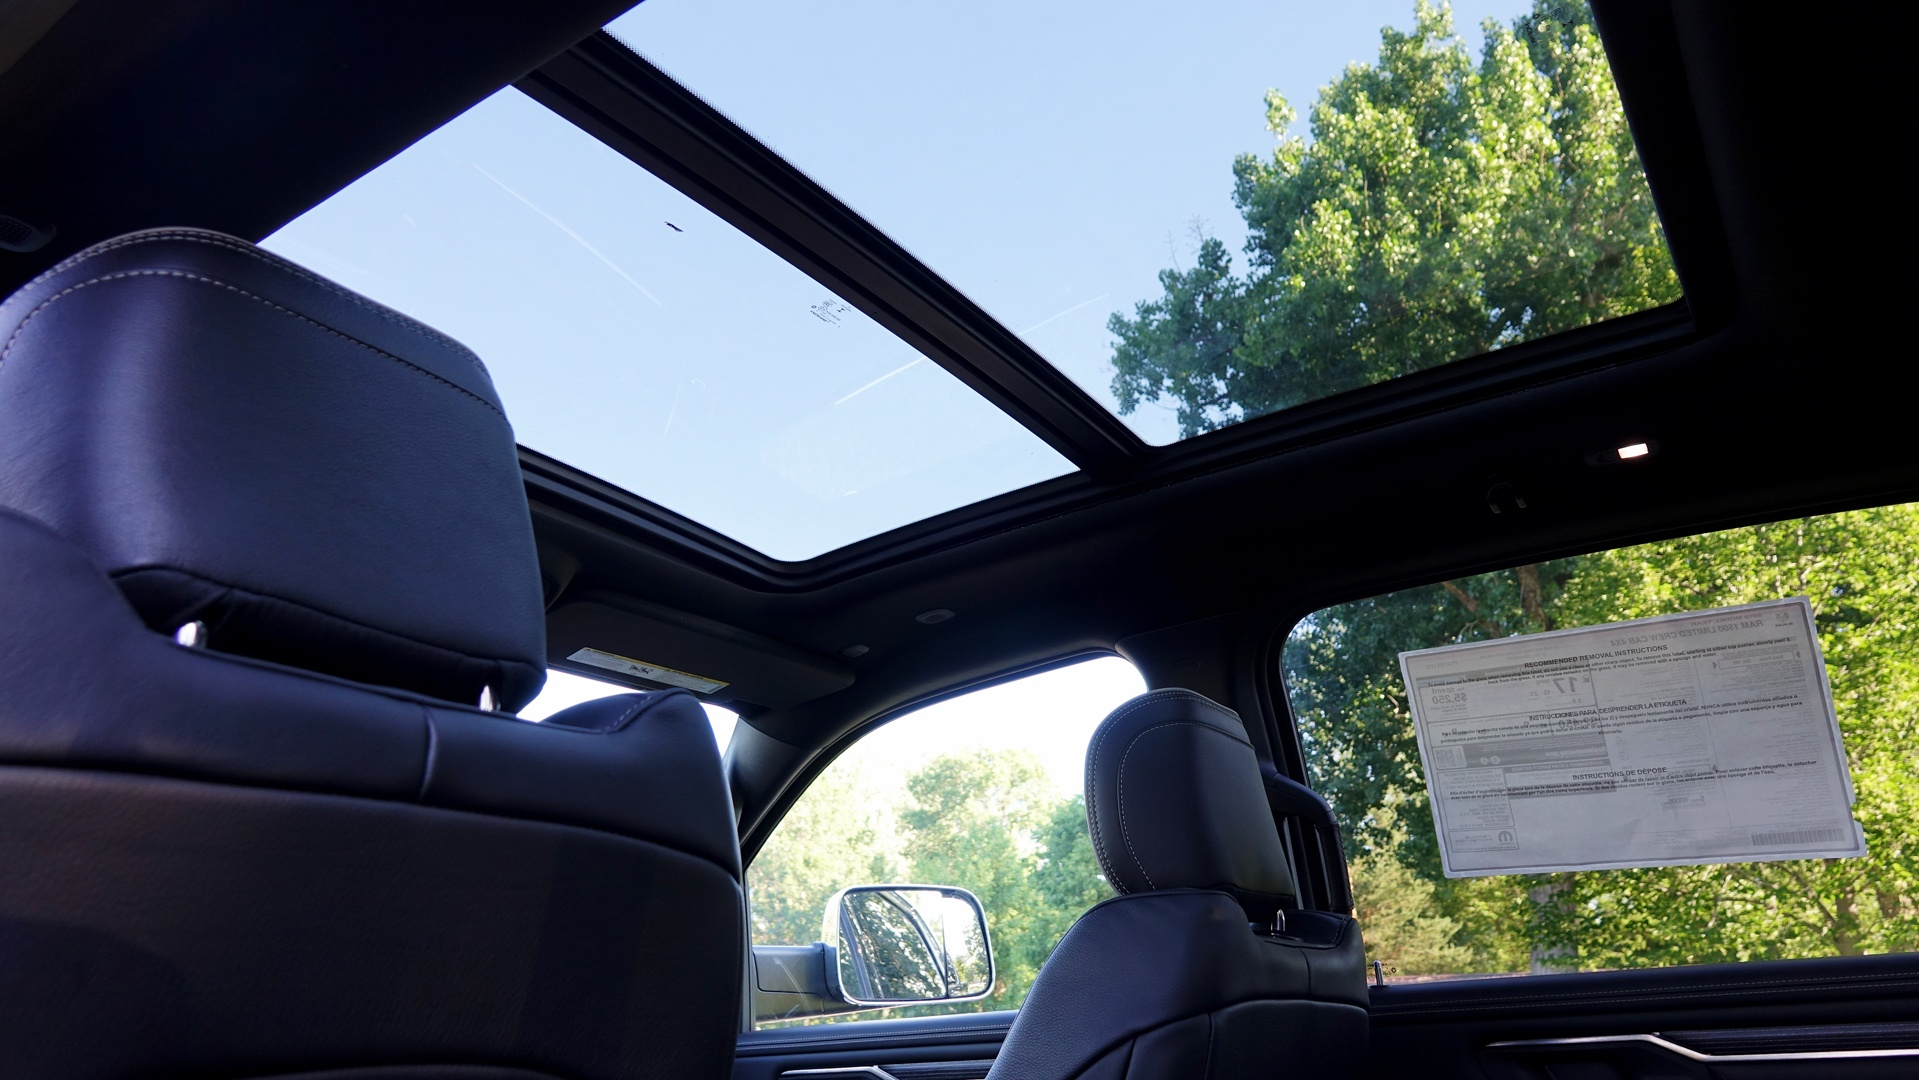 2019 Dodge RAM 1500 interior, 10 foot sunroof